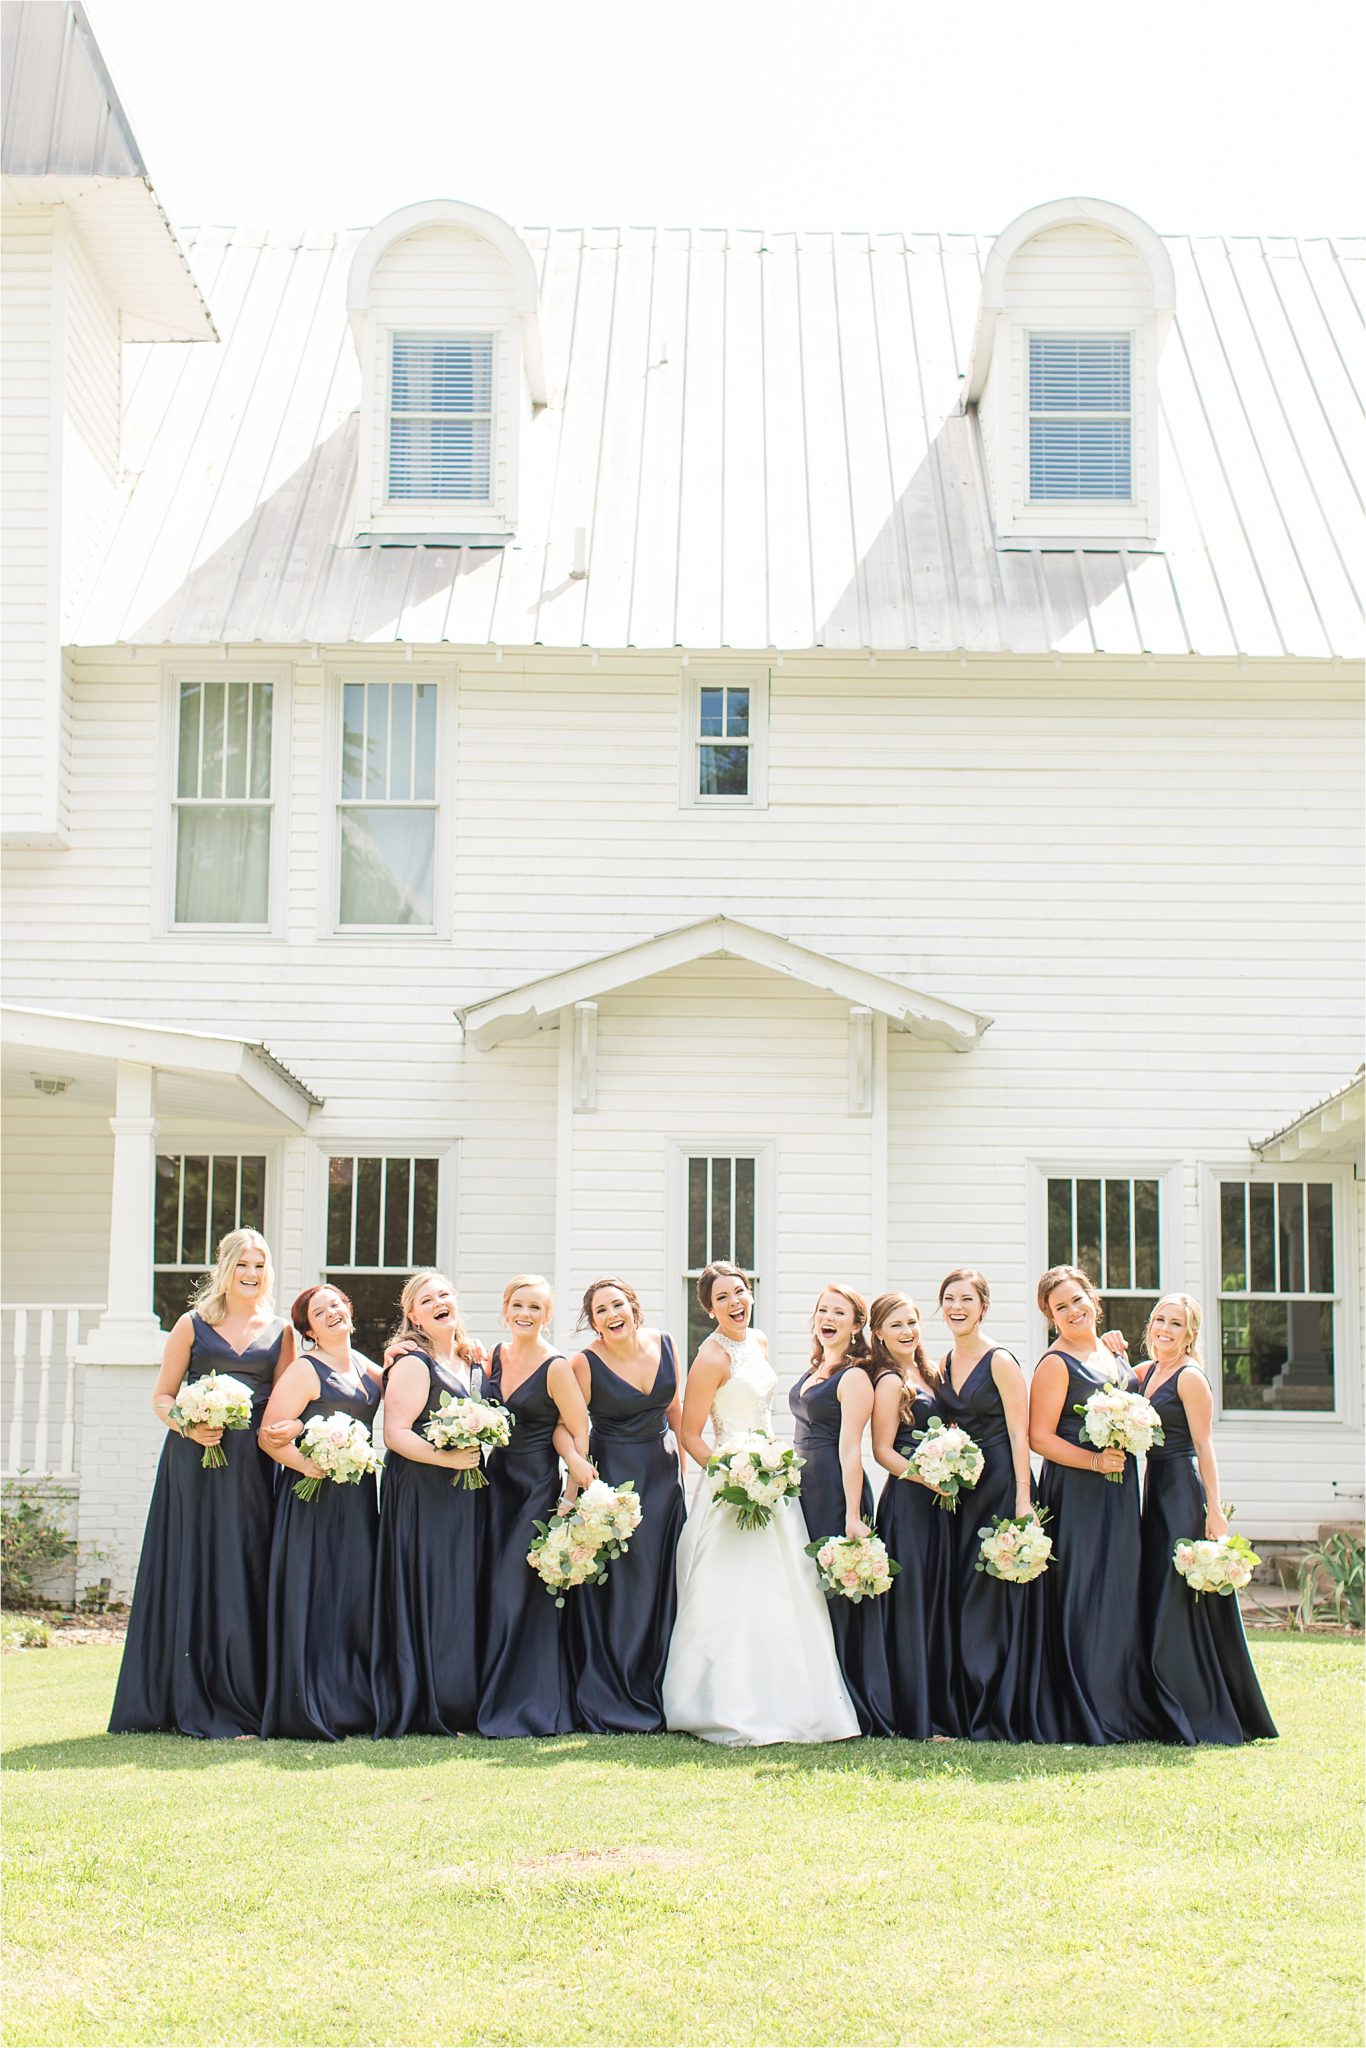 Sonnet House, Birmingham Alabama Wedding Photographer, Bride and bridesmaid, Blue themed wedding